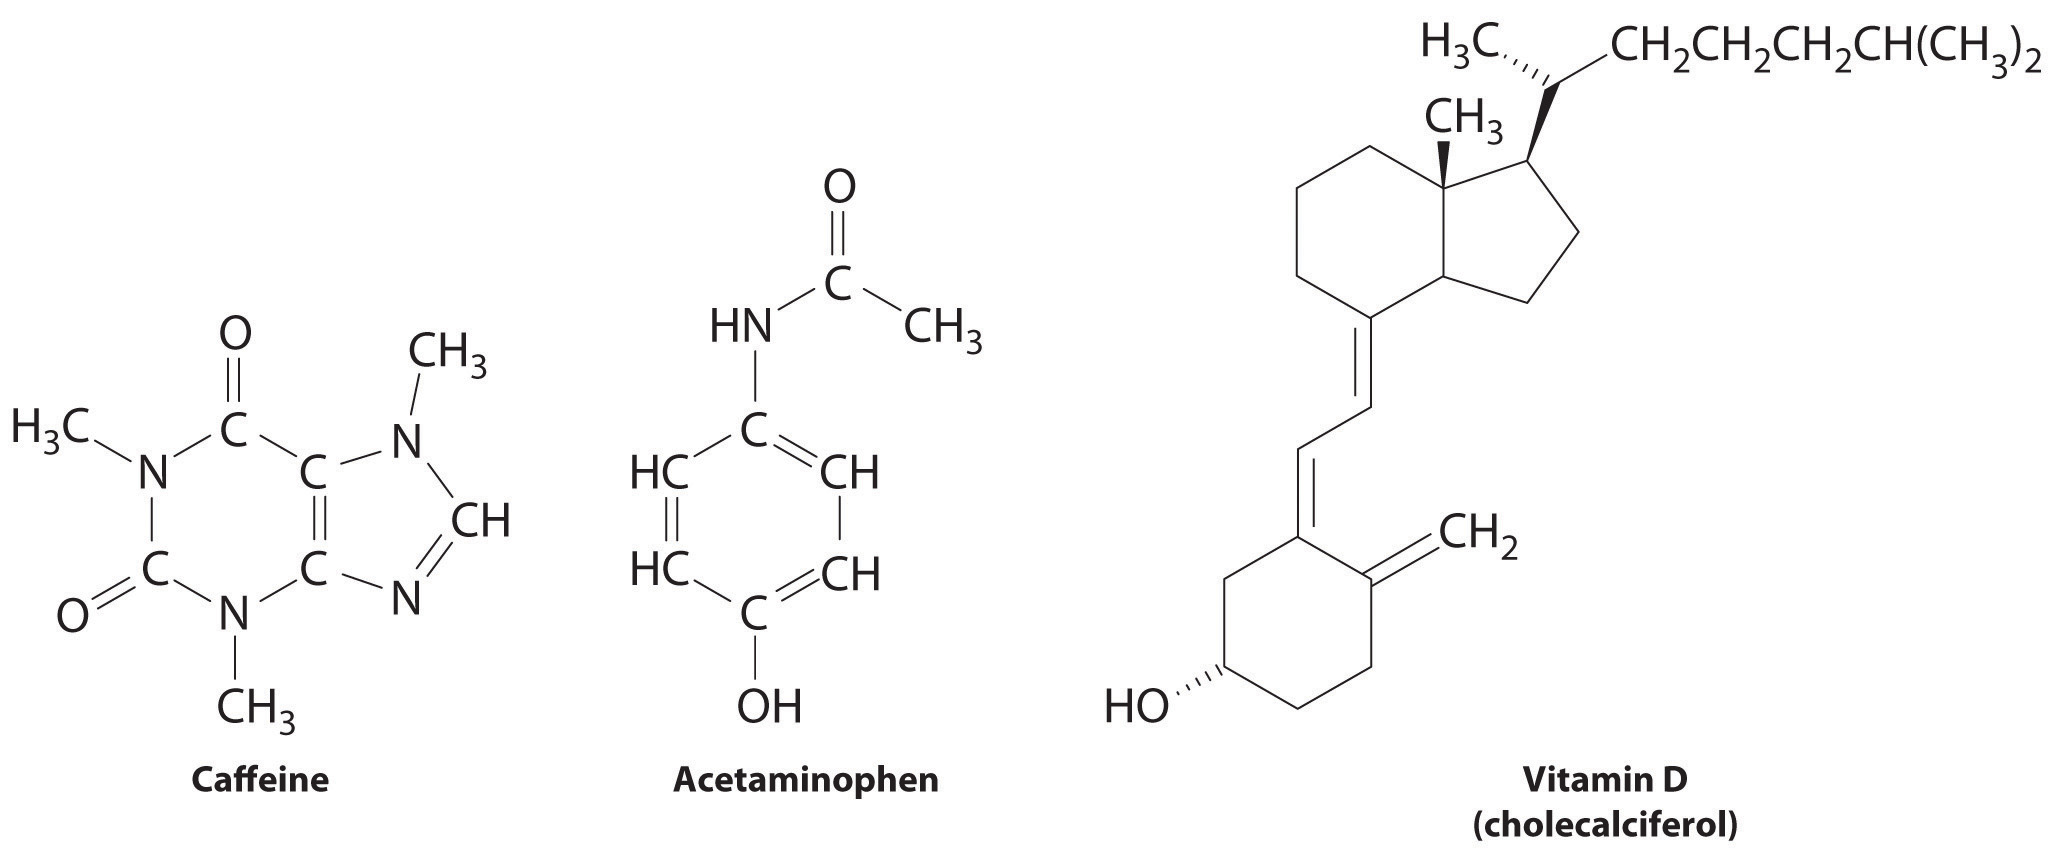 Solubility Of Paracetamol In Water At Room Temperature